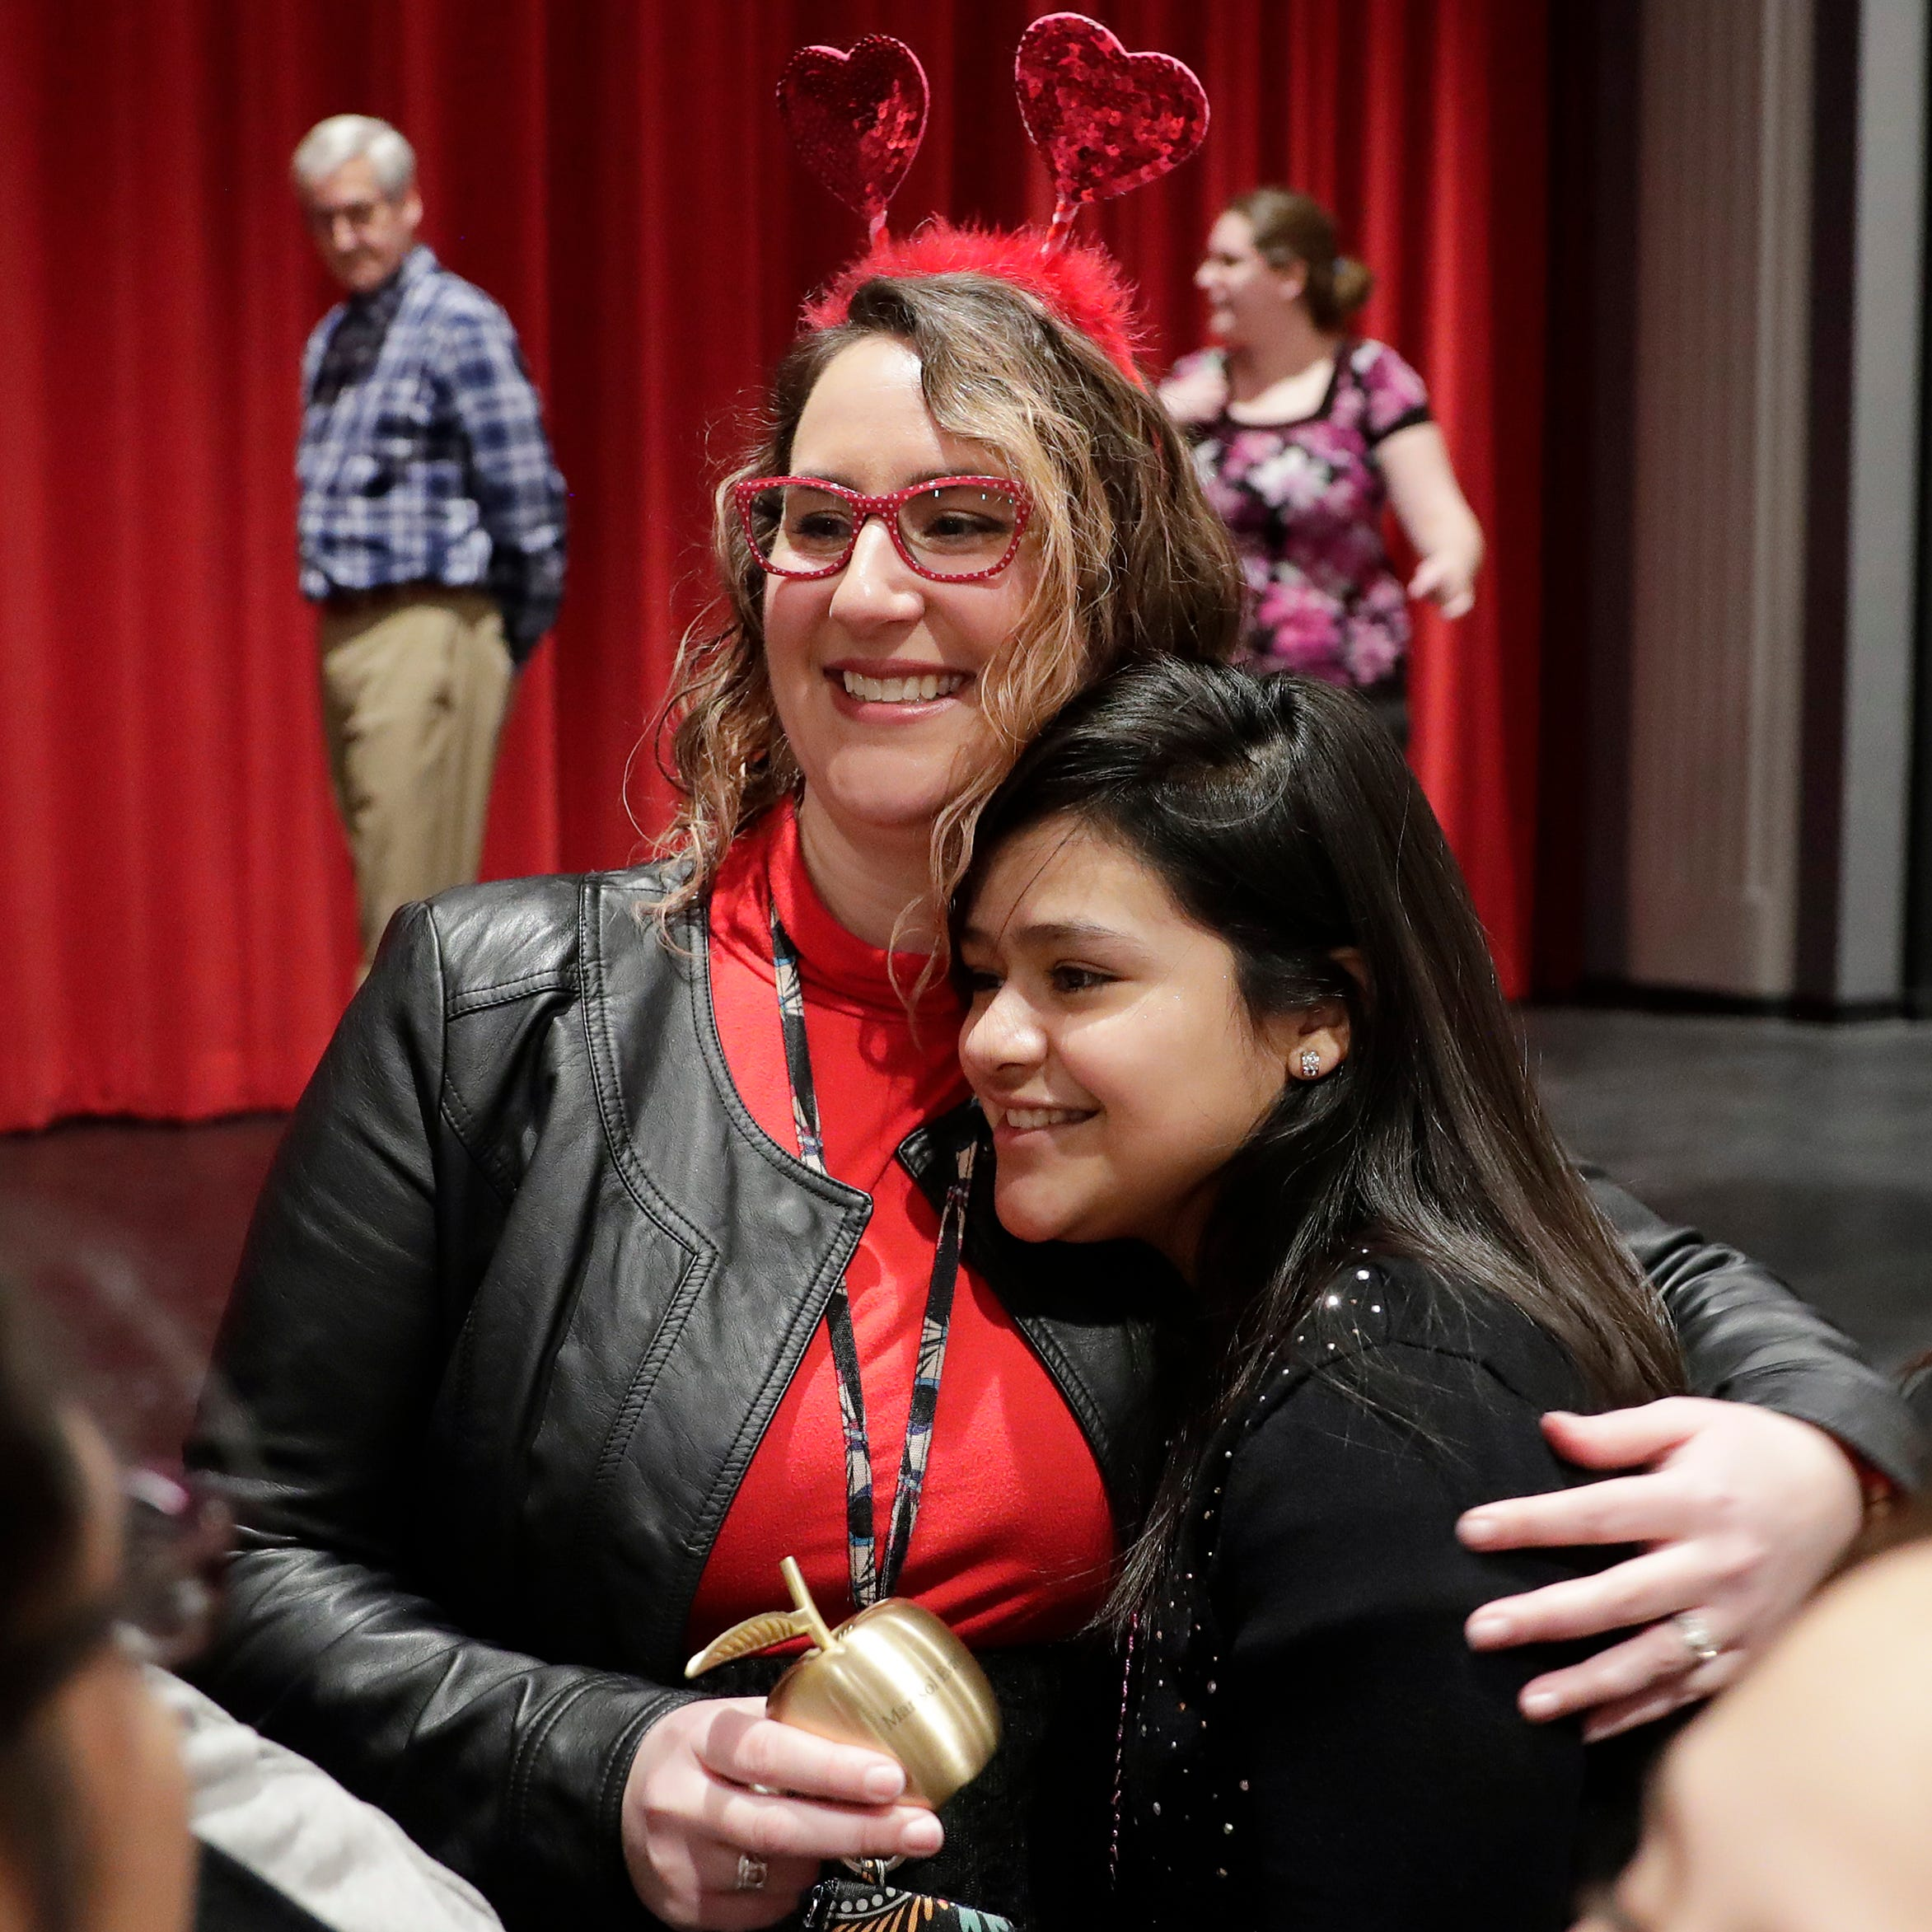 Green Bay School District's Marisol Evans awarded Golden Apple Award